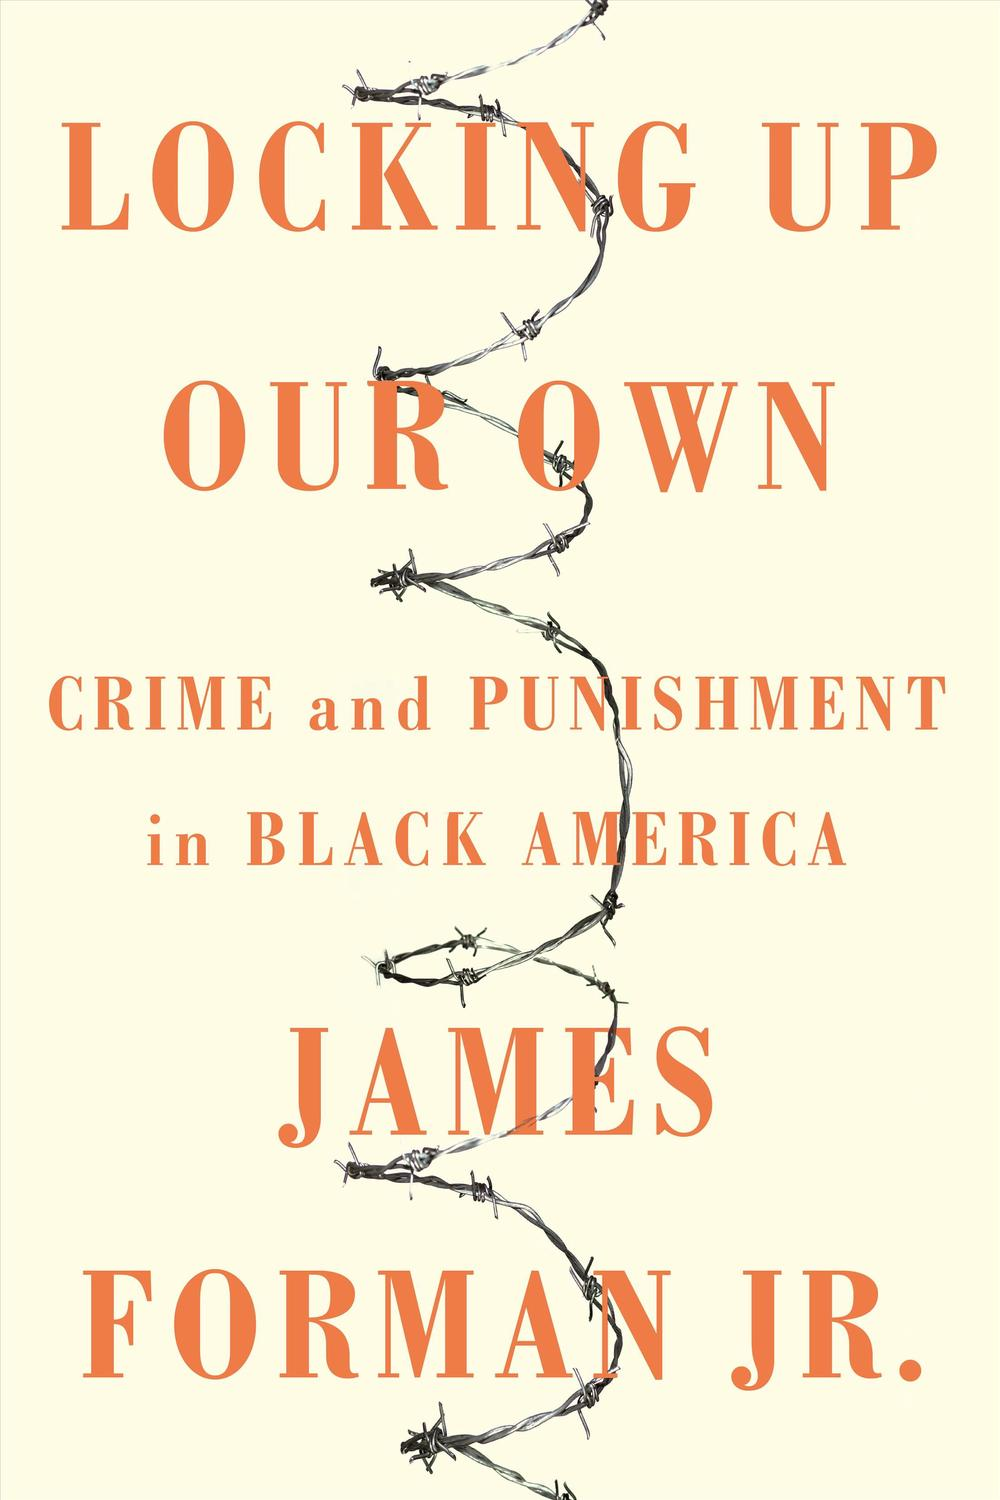 Locking Up Our OwnCrime and Punishment in Black America